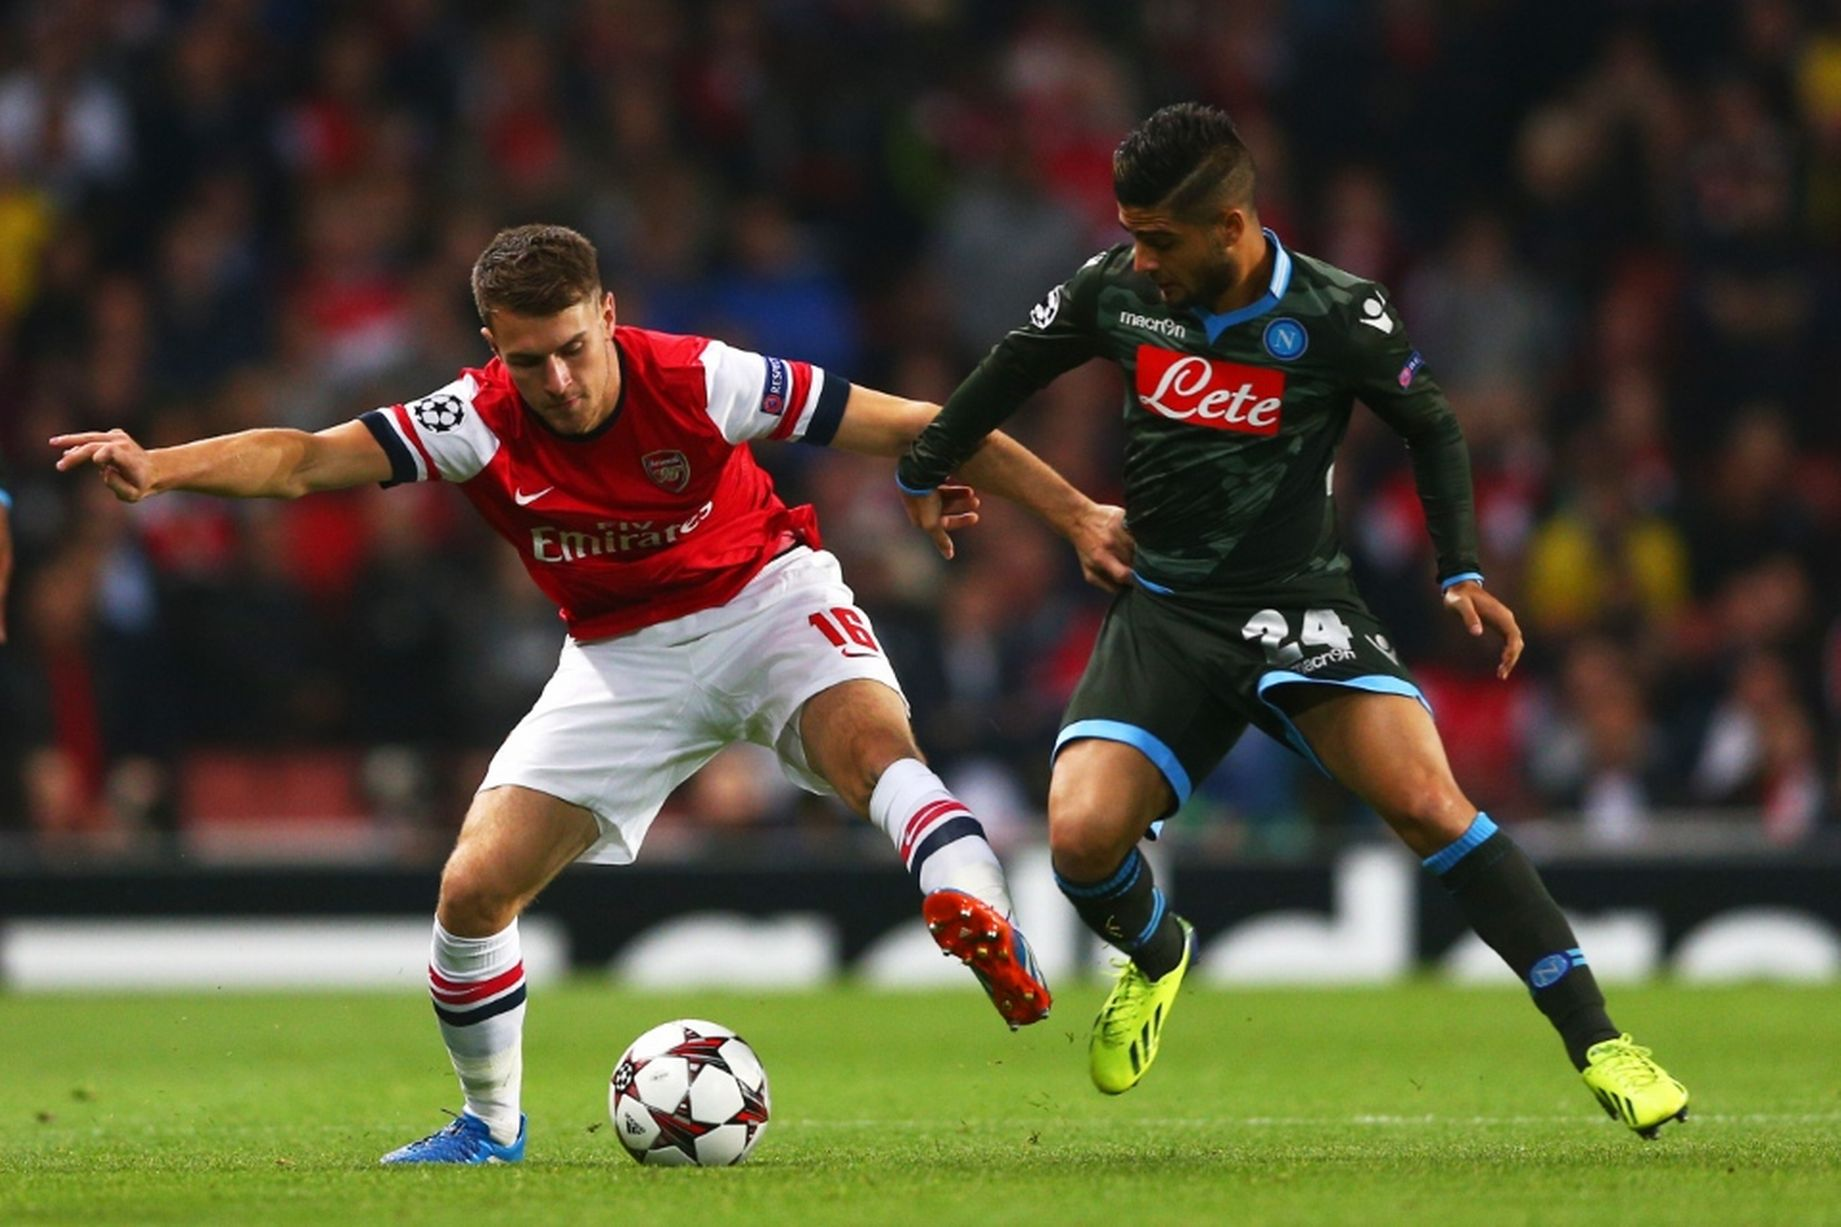 Arsenal and Napoli are facing off for only the second time in history (Agency Photos)